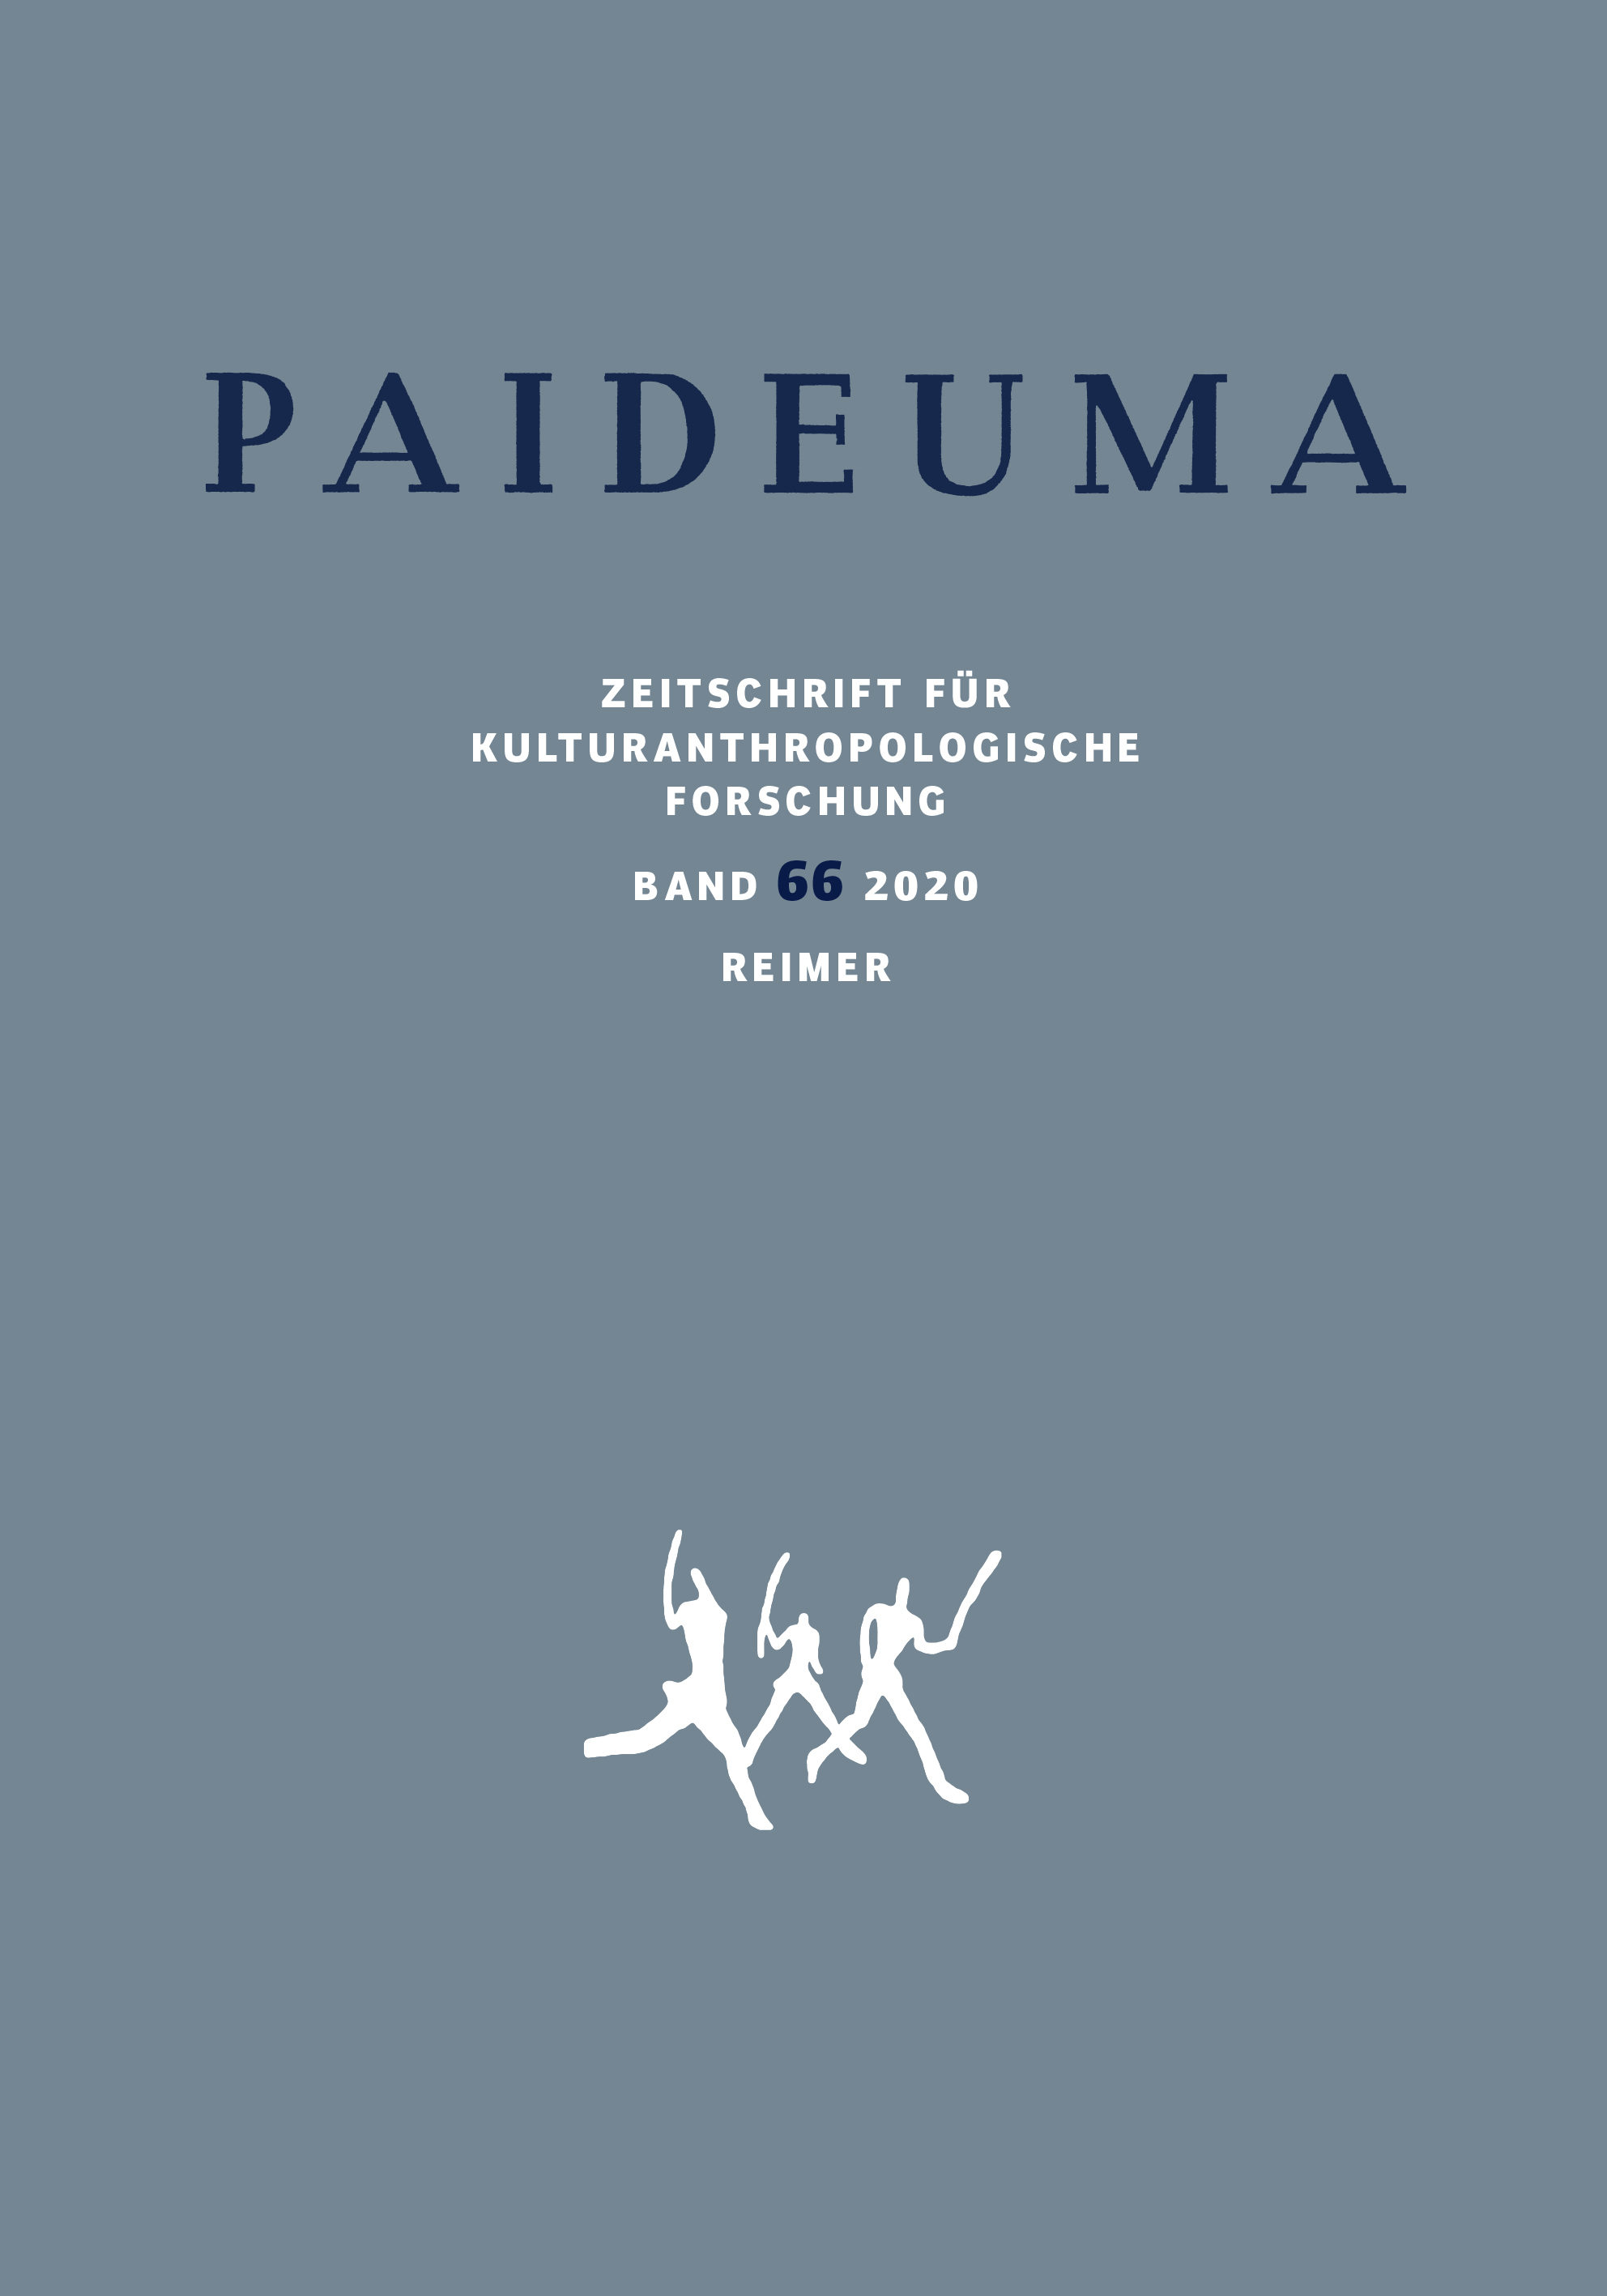 Latest issue of Paideuma out now